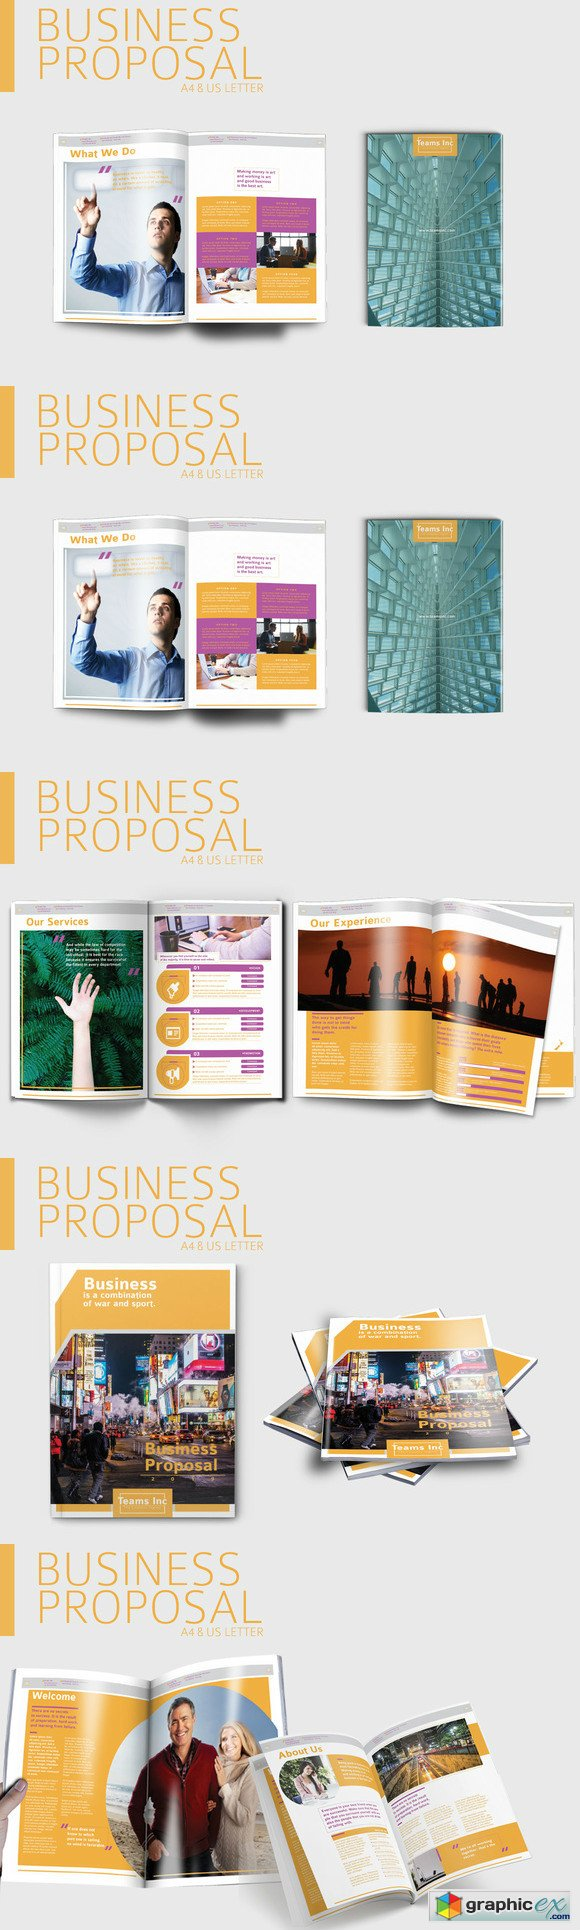 Business Proposal 450761